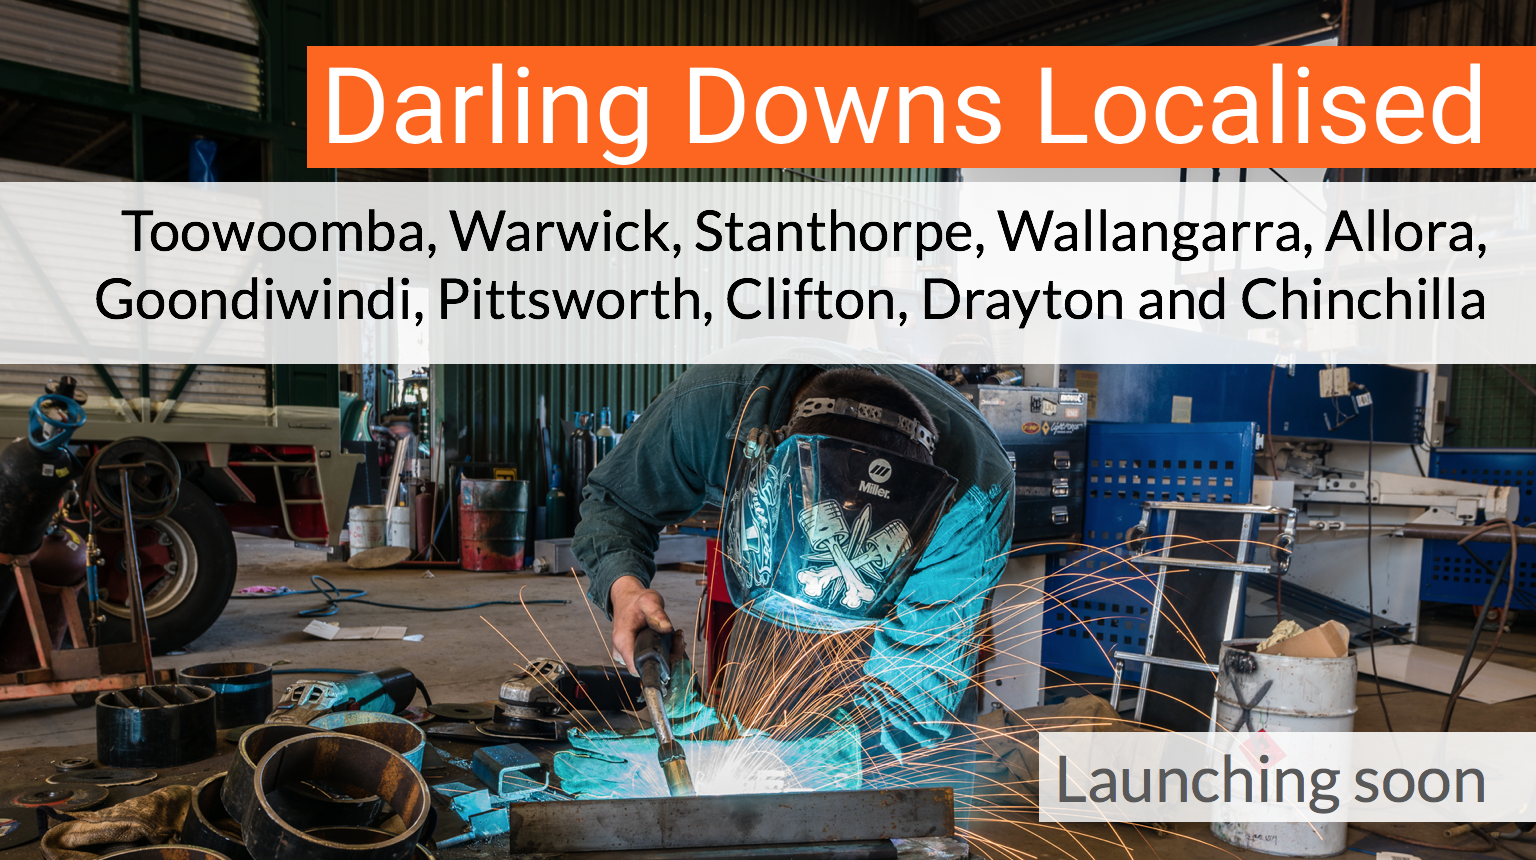 Darling Downs